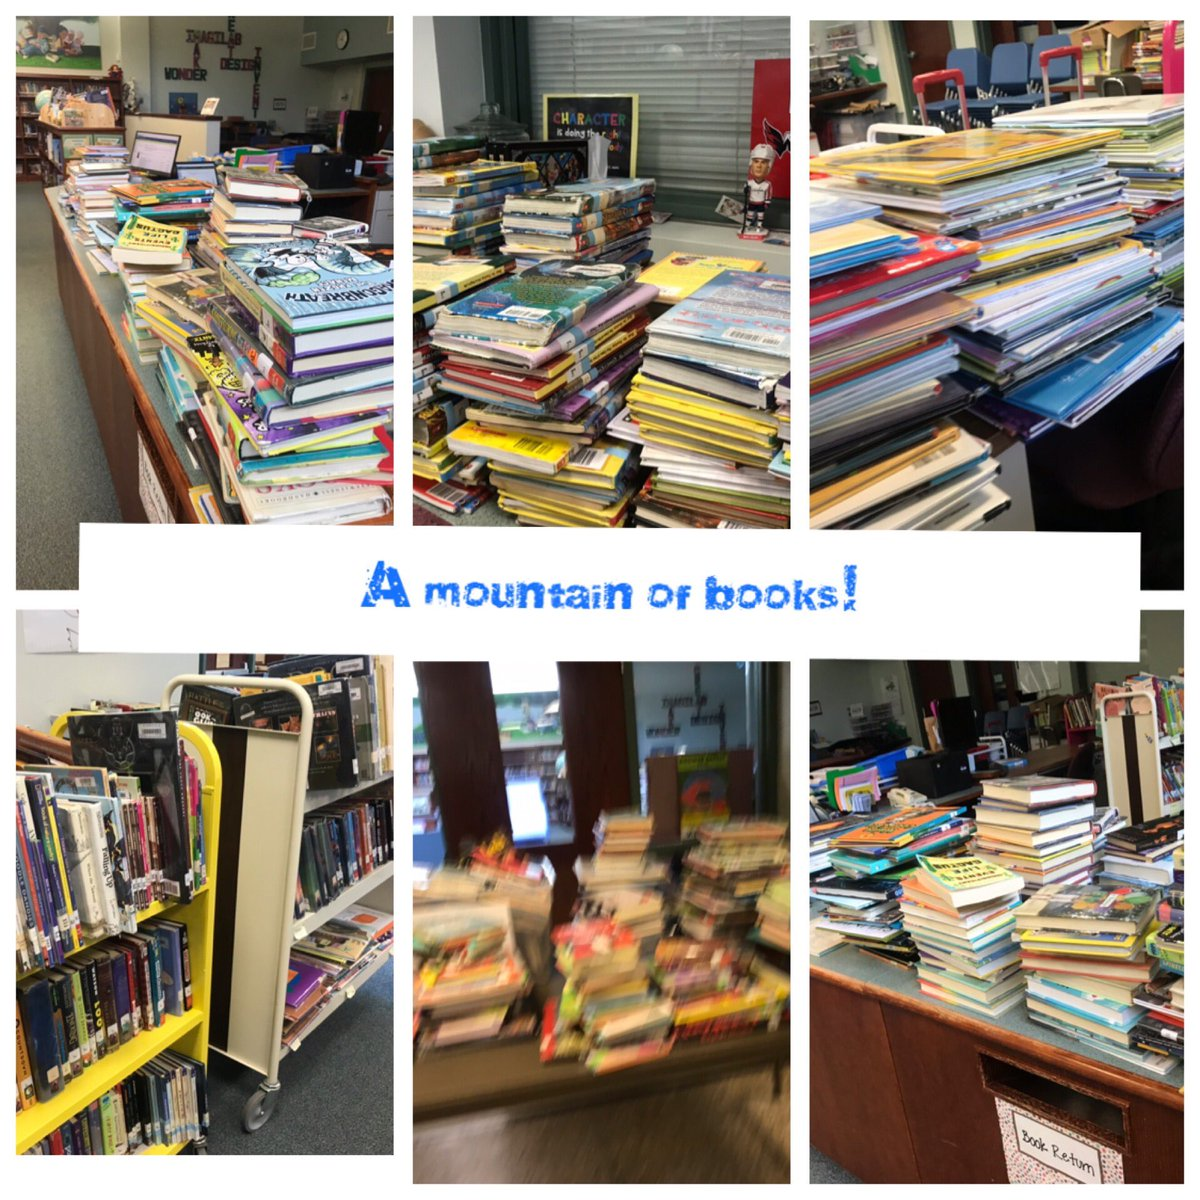 Checked in 1500 books just from today!!! Wow! Good going <a target='_blank' href='http://twitter.com/NTMKnightsAPS'>@NTMKnightsAPS</a>!  Thanks so much to Dave, Christine & Ann for all of your help! 😊<a target='_blank' href='http://twitter.com/NottinghamPTA'>@NottinghamPTA</a> <a target='_blank' href='http://twitter.com/APSLibrarians'>@APSLibrarians</a> <a target='_blank' href='http://search.twitter.com/search?q=KnightsRock'><a target='_blank' href='https://twitter.com/hashtag/KnightsRock?src=hash'>#KnightsRock</a></a> <a target='_blank' href='https://t.co/TUKVqTjJ7a'>https://t.co/TUKVqTjJ7a</a>